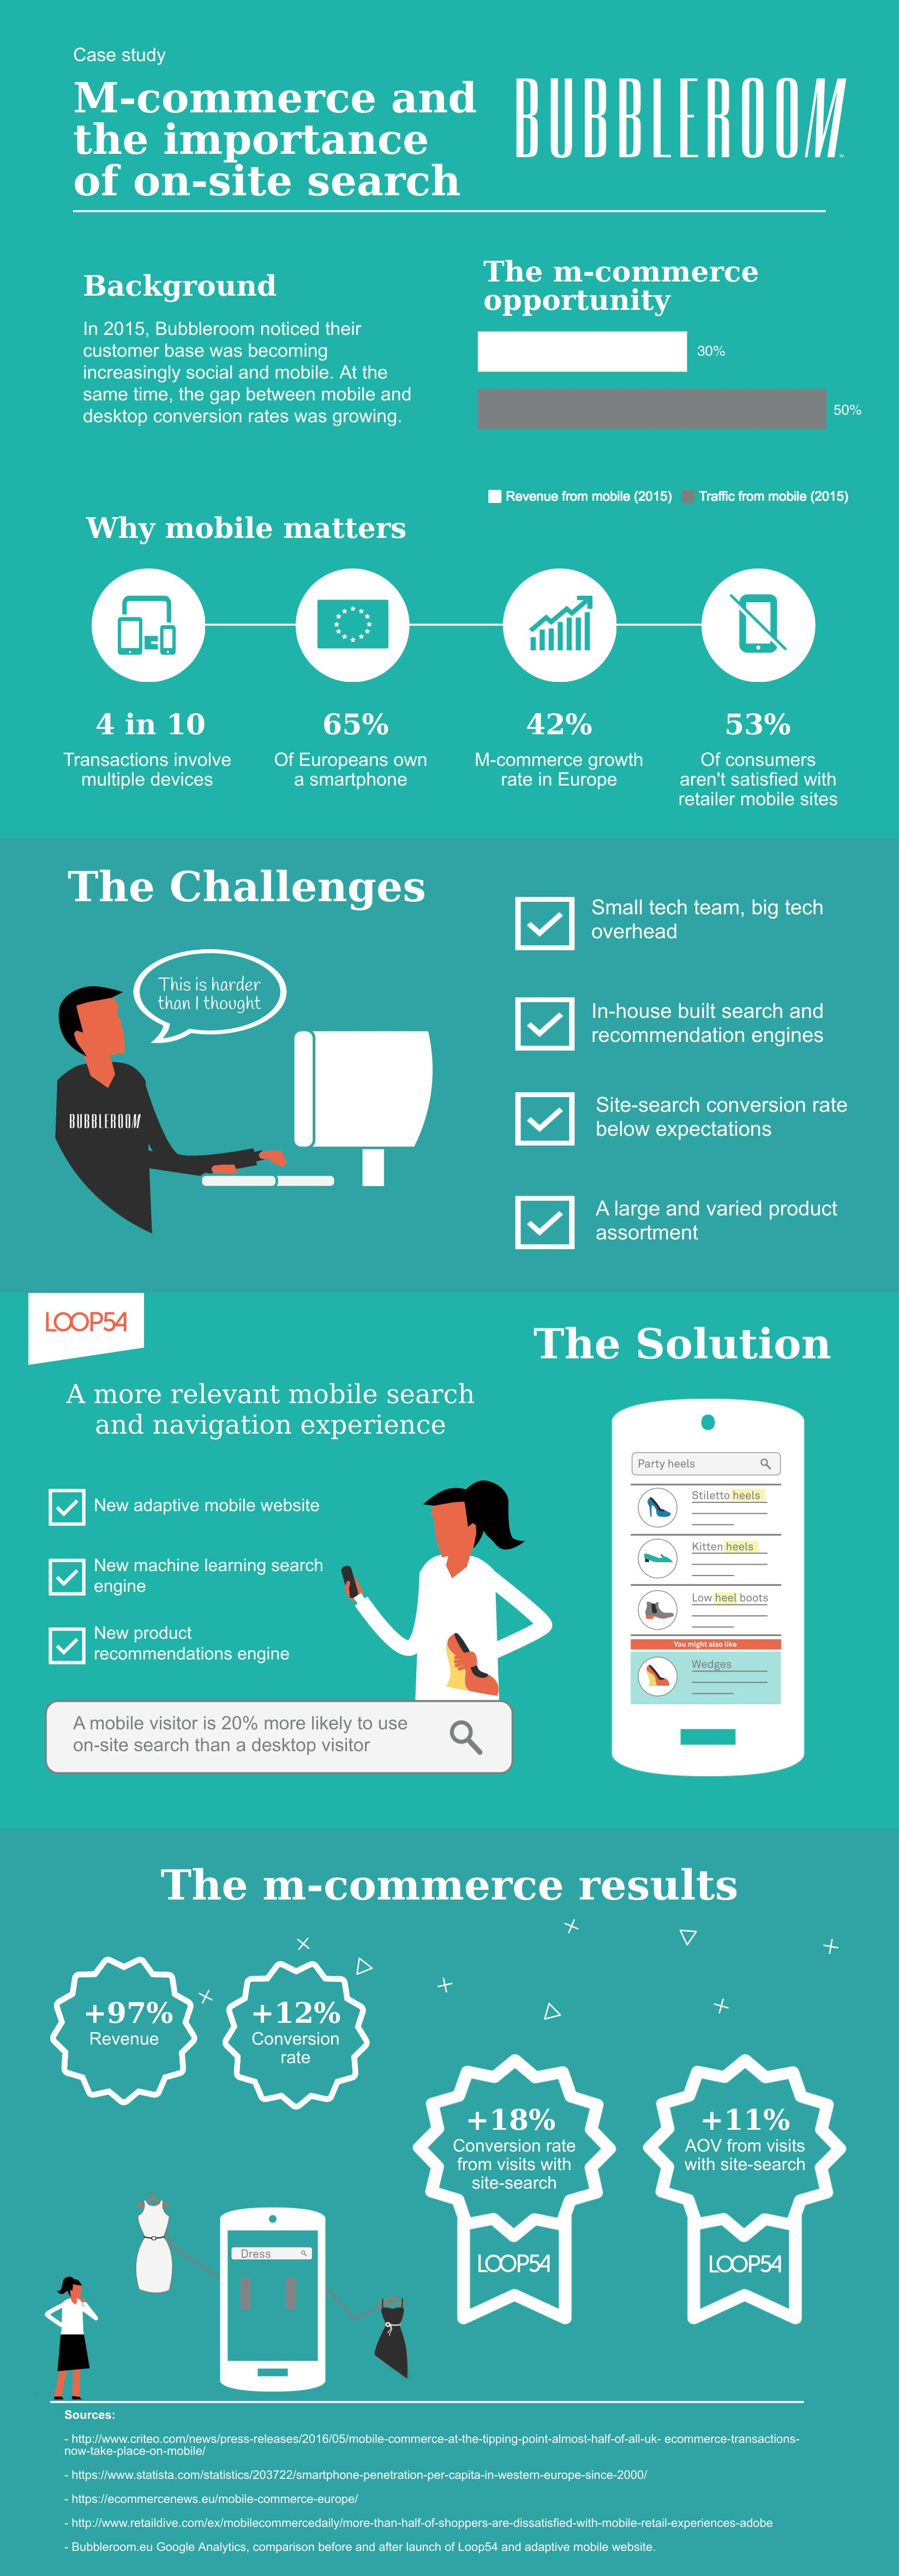 Bubbleroom_Infographic_M_Commerce_Case